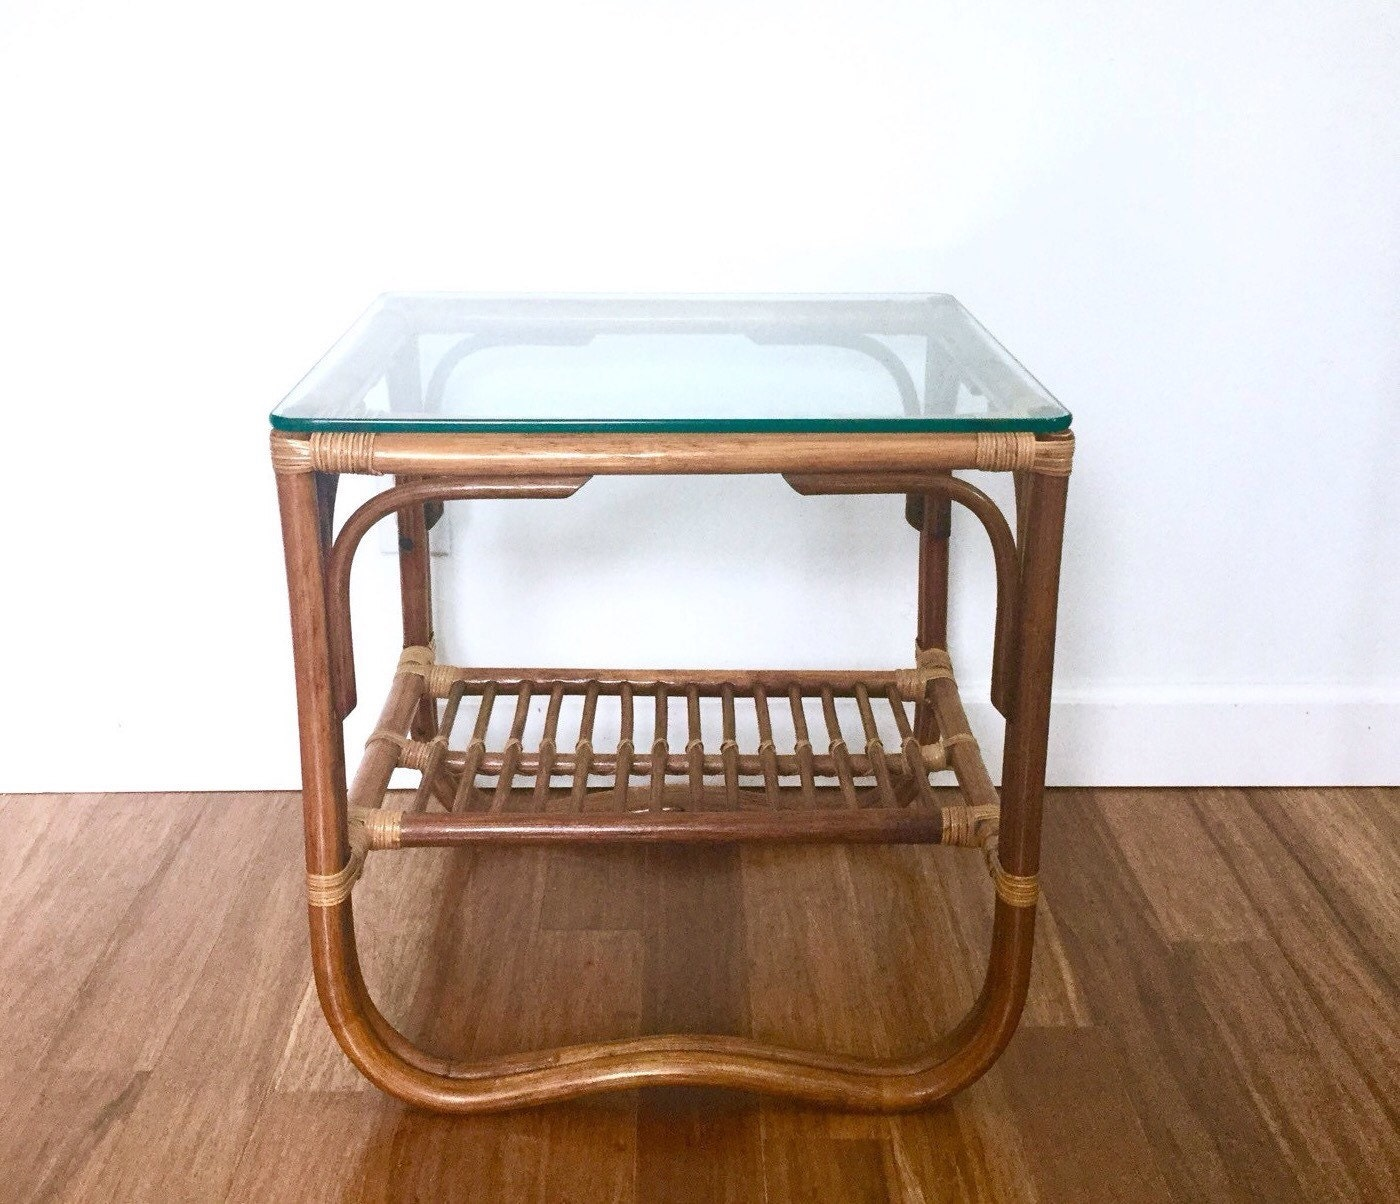 Rattan Coffee Table Etsy: SOLD Bamboo Rattan And Glass Side Table Bentwood Bohemian